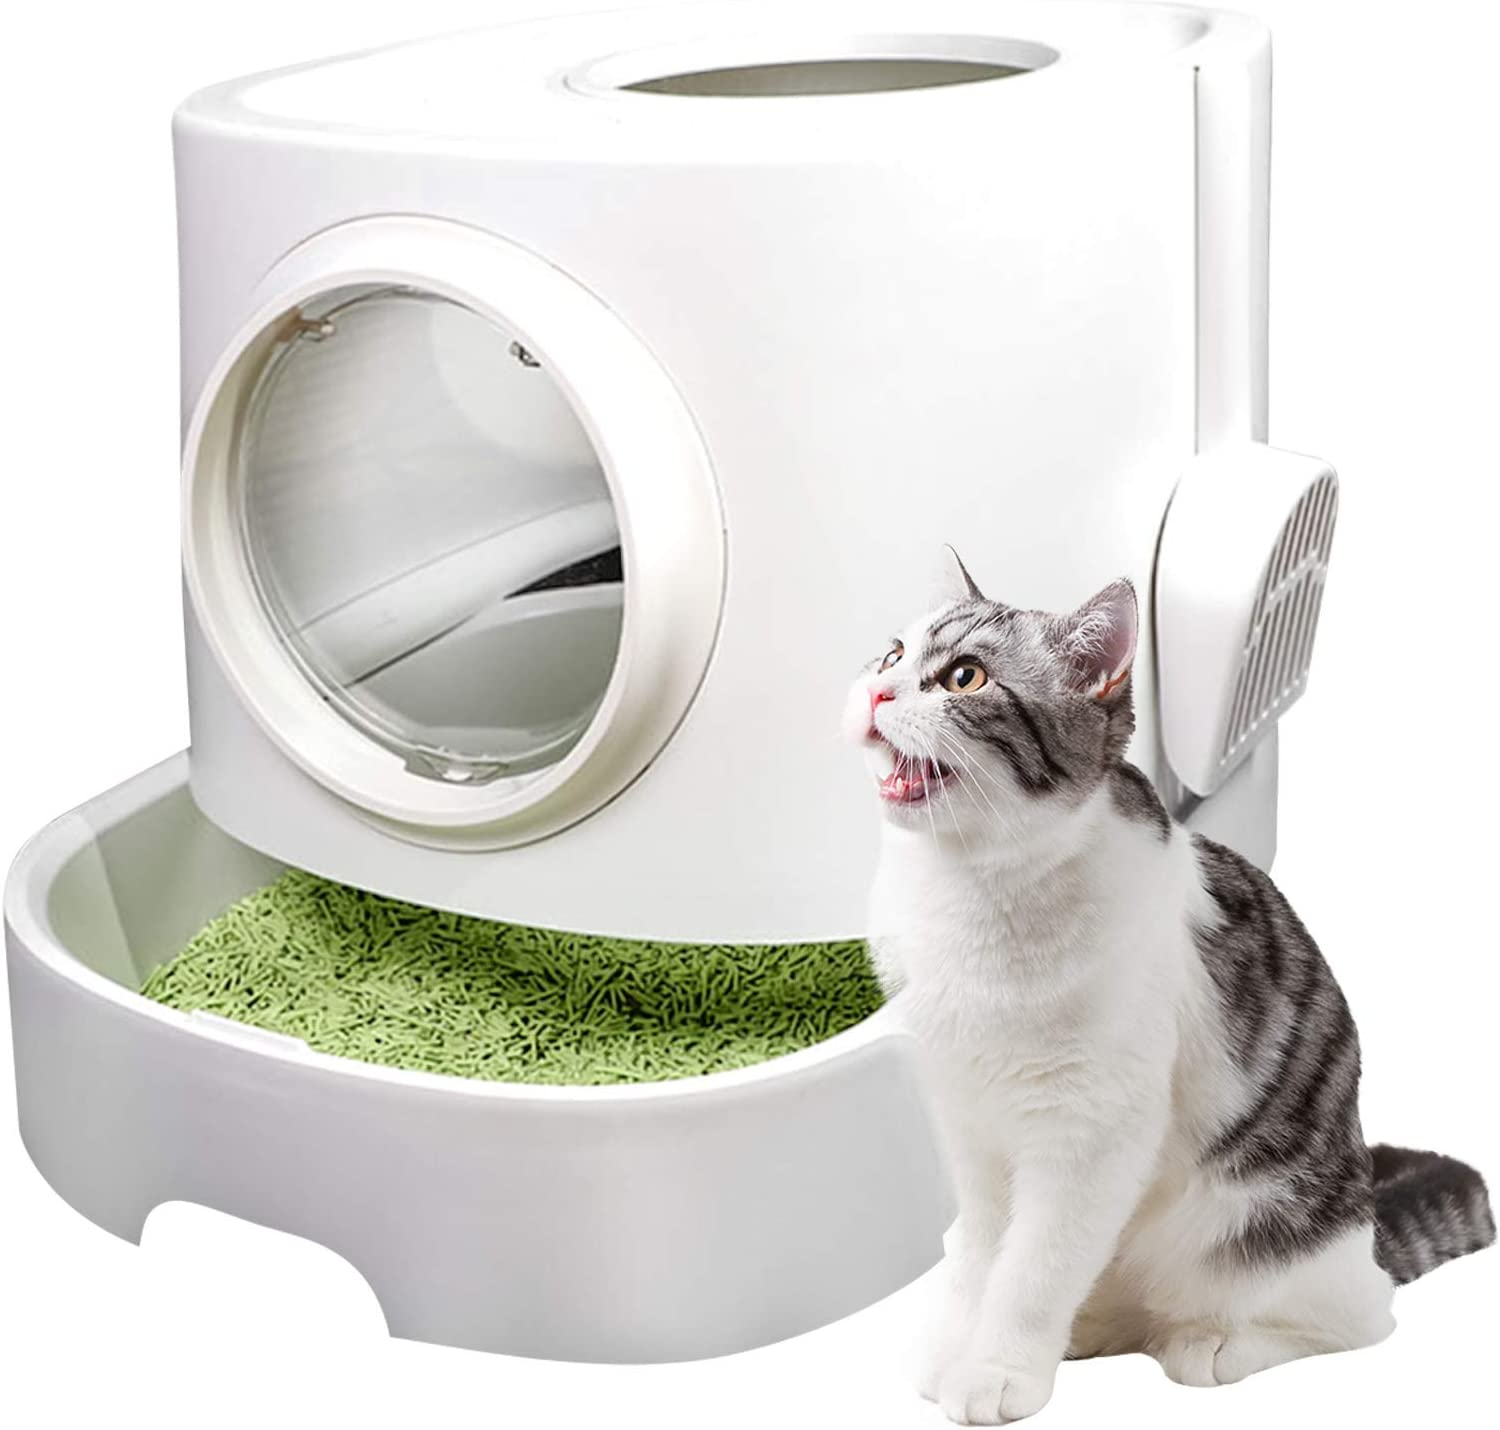 Large Capacity Cat Indefinitely Litter Box with Scoop Enclosed Outlet SALE Top Litt Entry